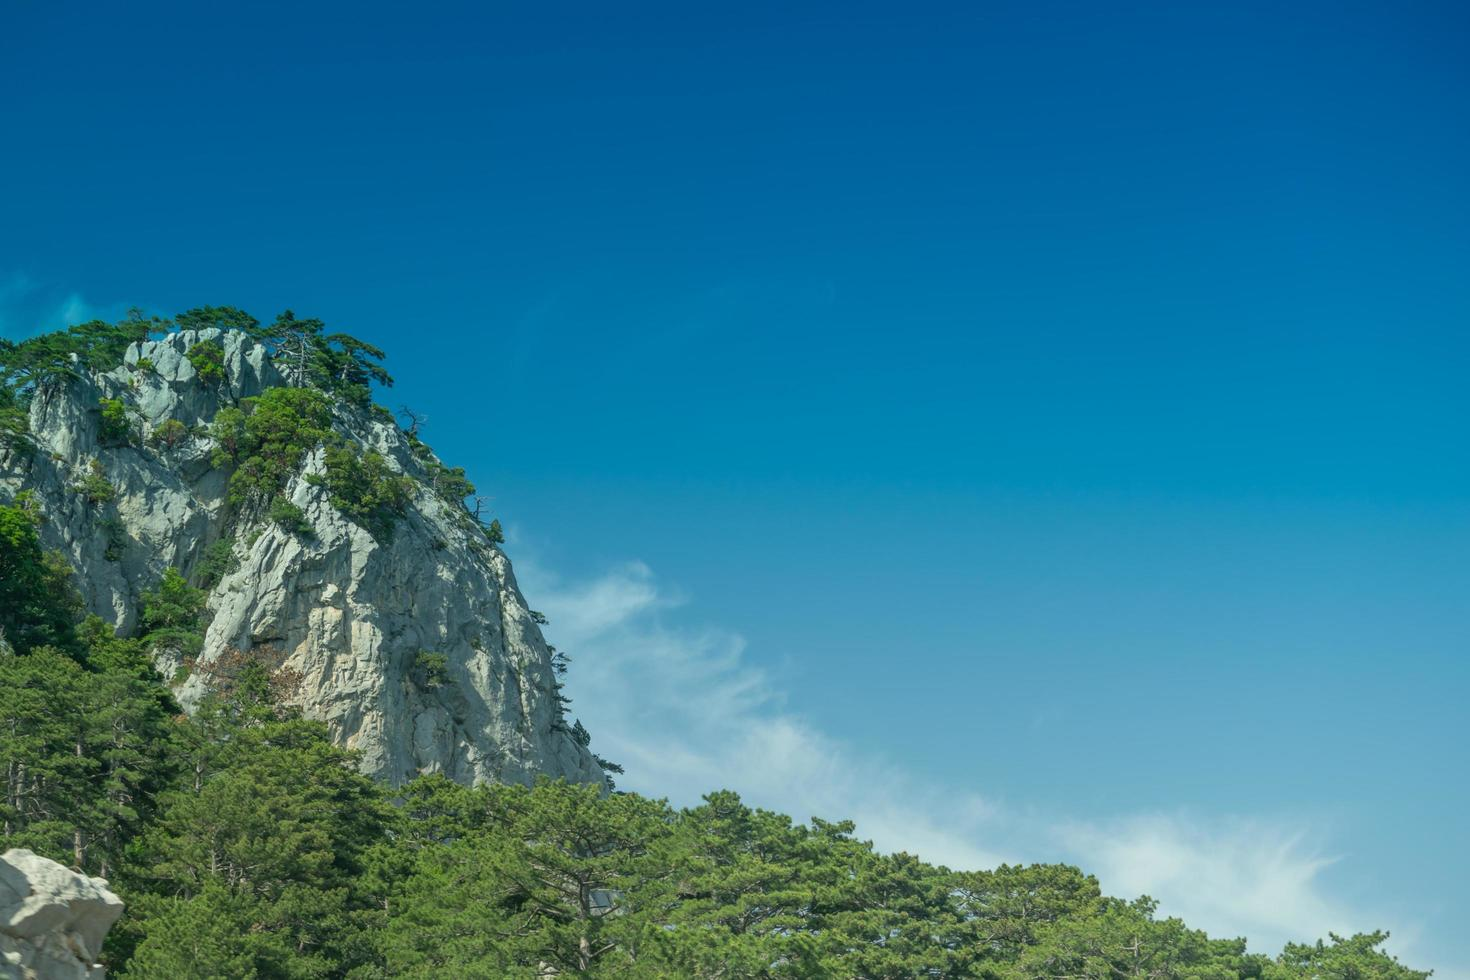 Mountain landscape with forests on blue sky background photo